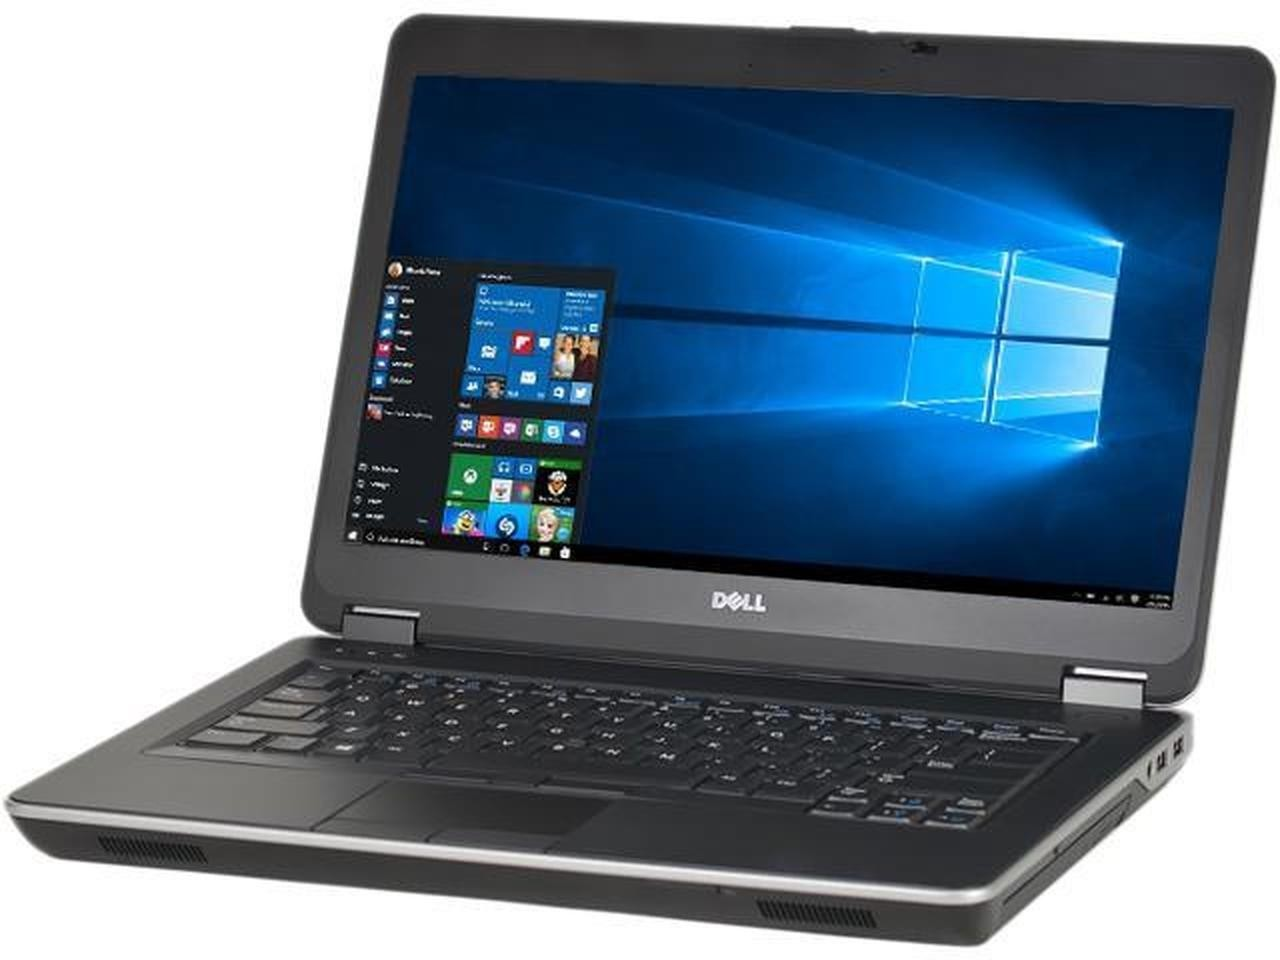 Refurbished laptops & desktops - REFURBISHED DELL LATITUDE E6440 (CORE I5 4TH GEN/4GB/500GB/WEBCAM/14''/WIN-10 PRO)